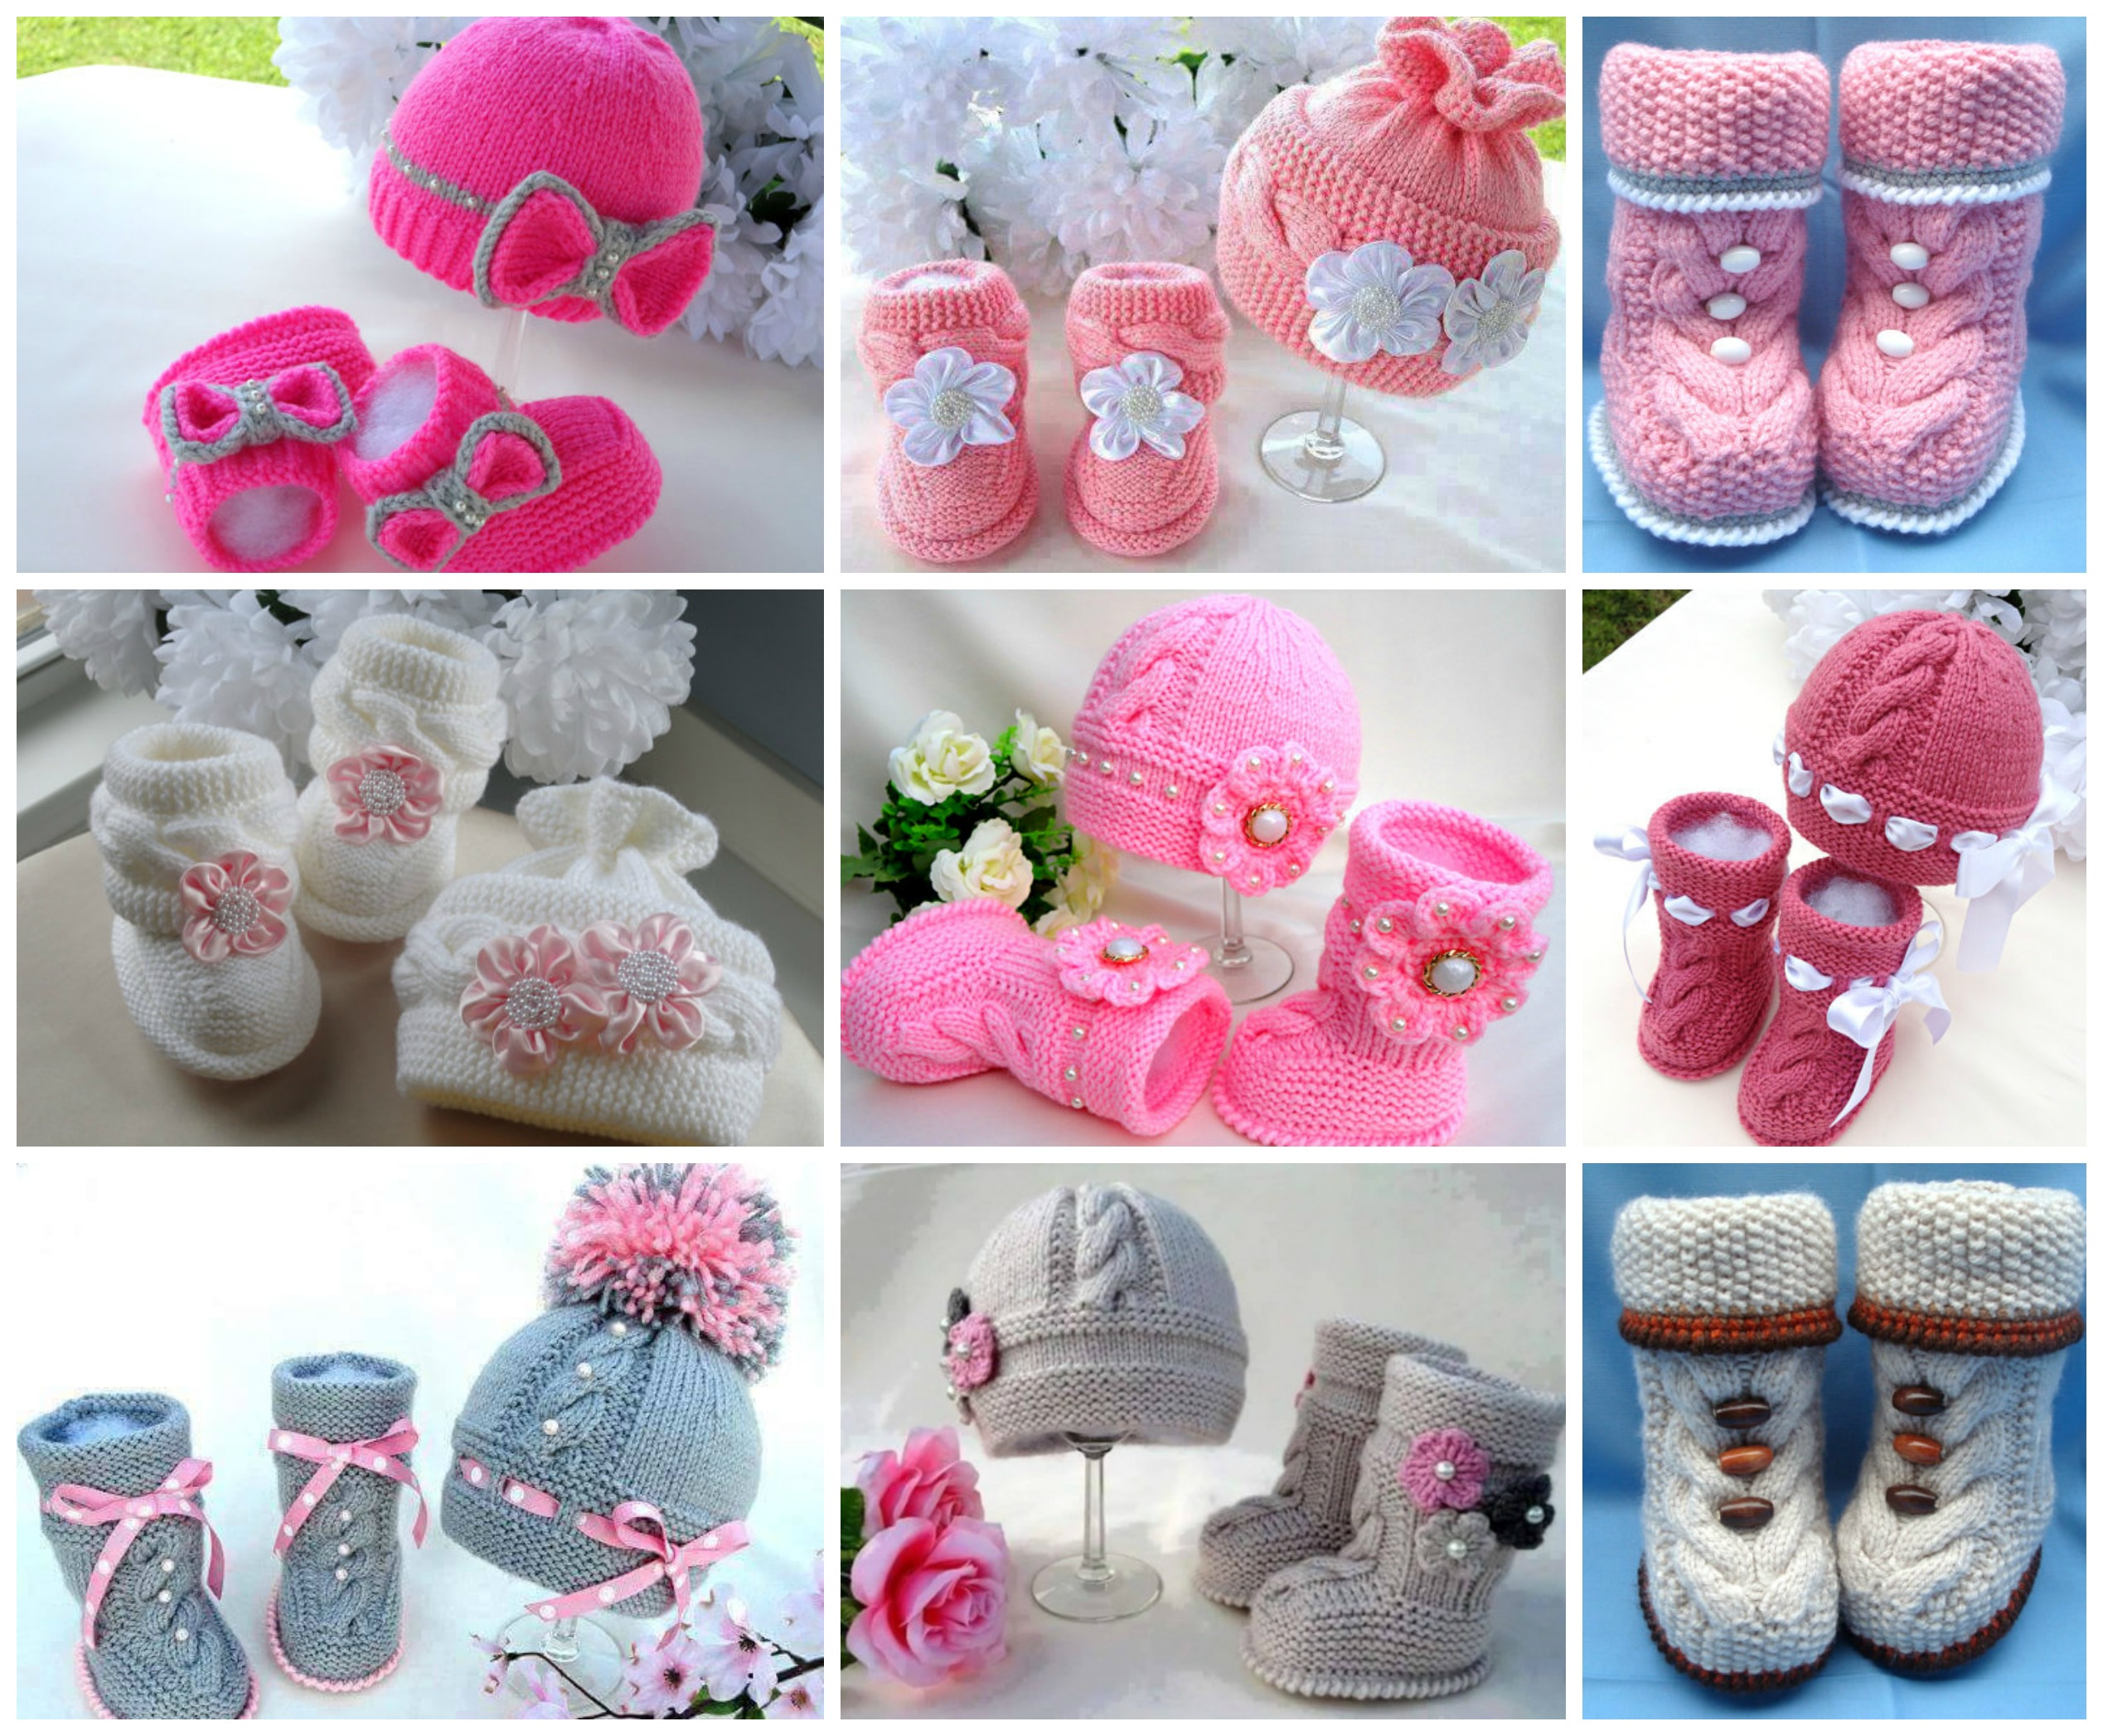 Knit Hat Booties for Baby - Super Cute Patterns